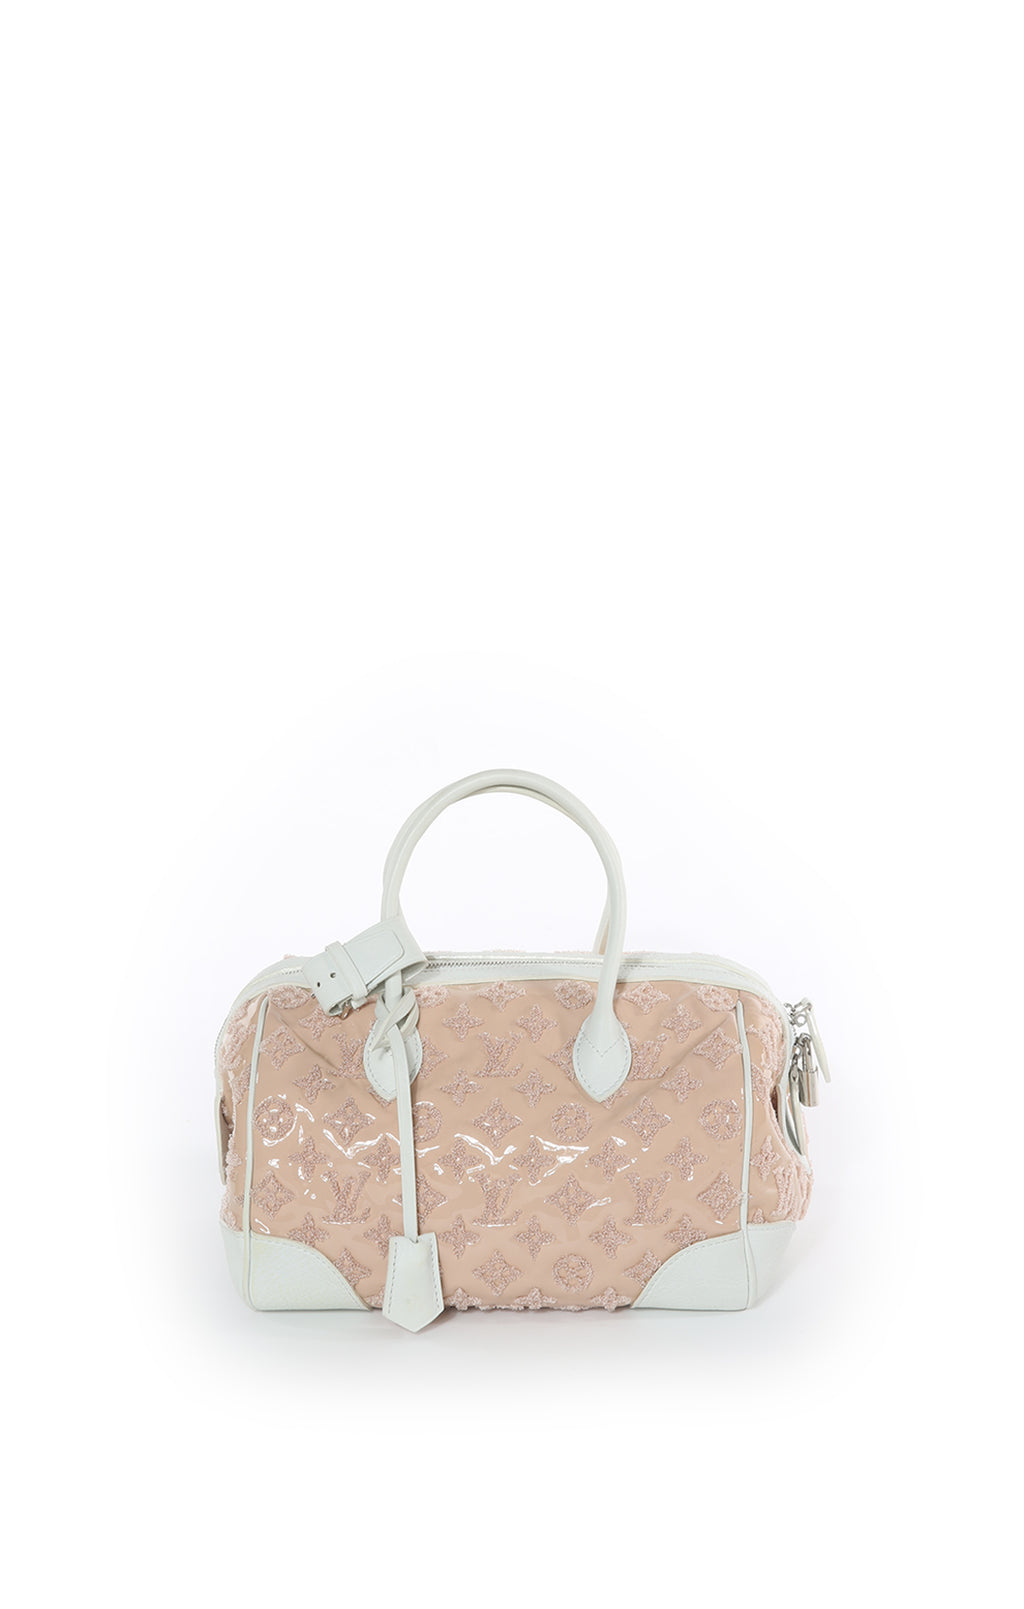 Front view LOUIS VUITTON Handbag Size: 11.5 in x 8 in x 8 in